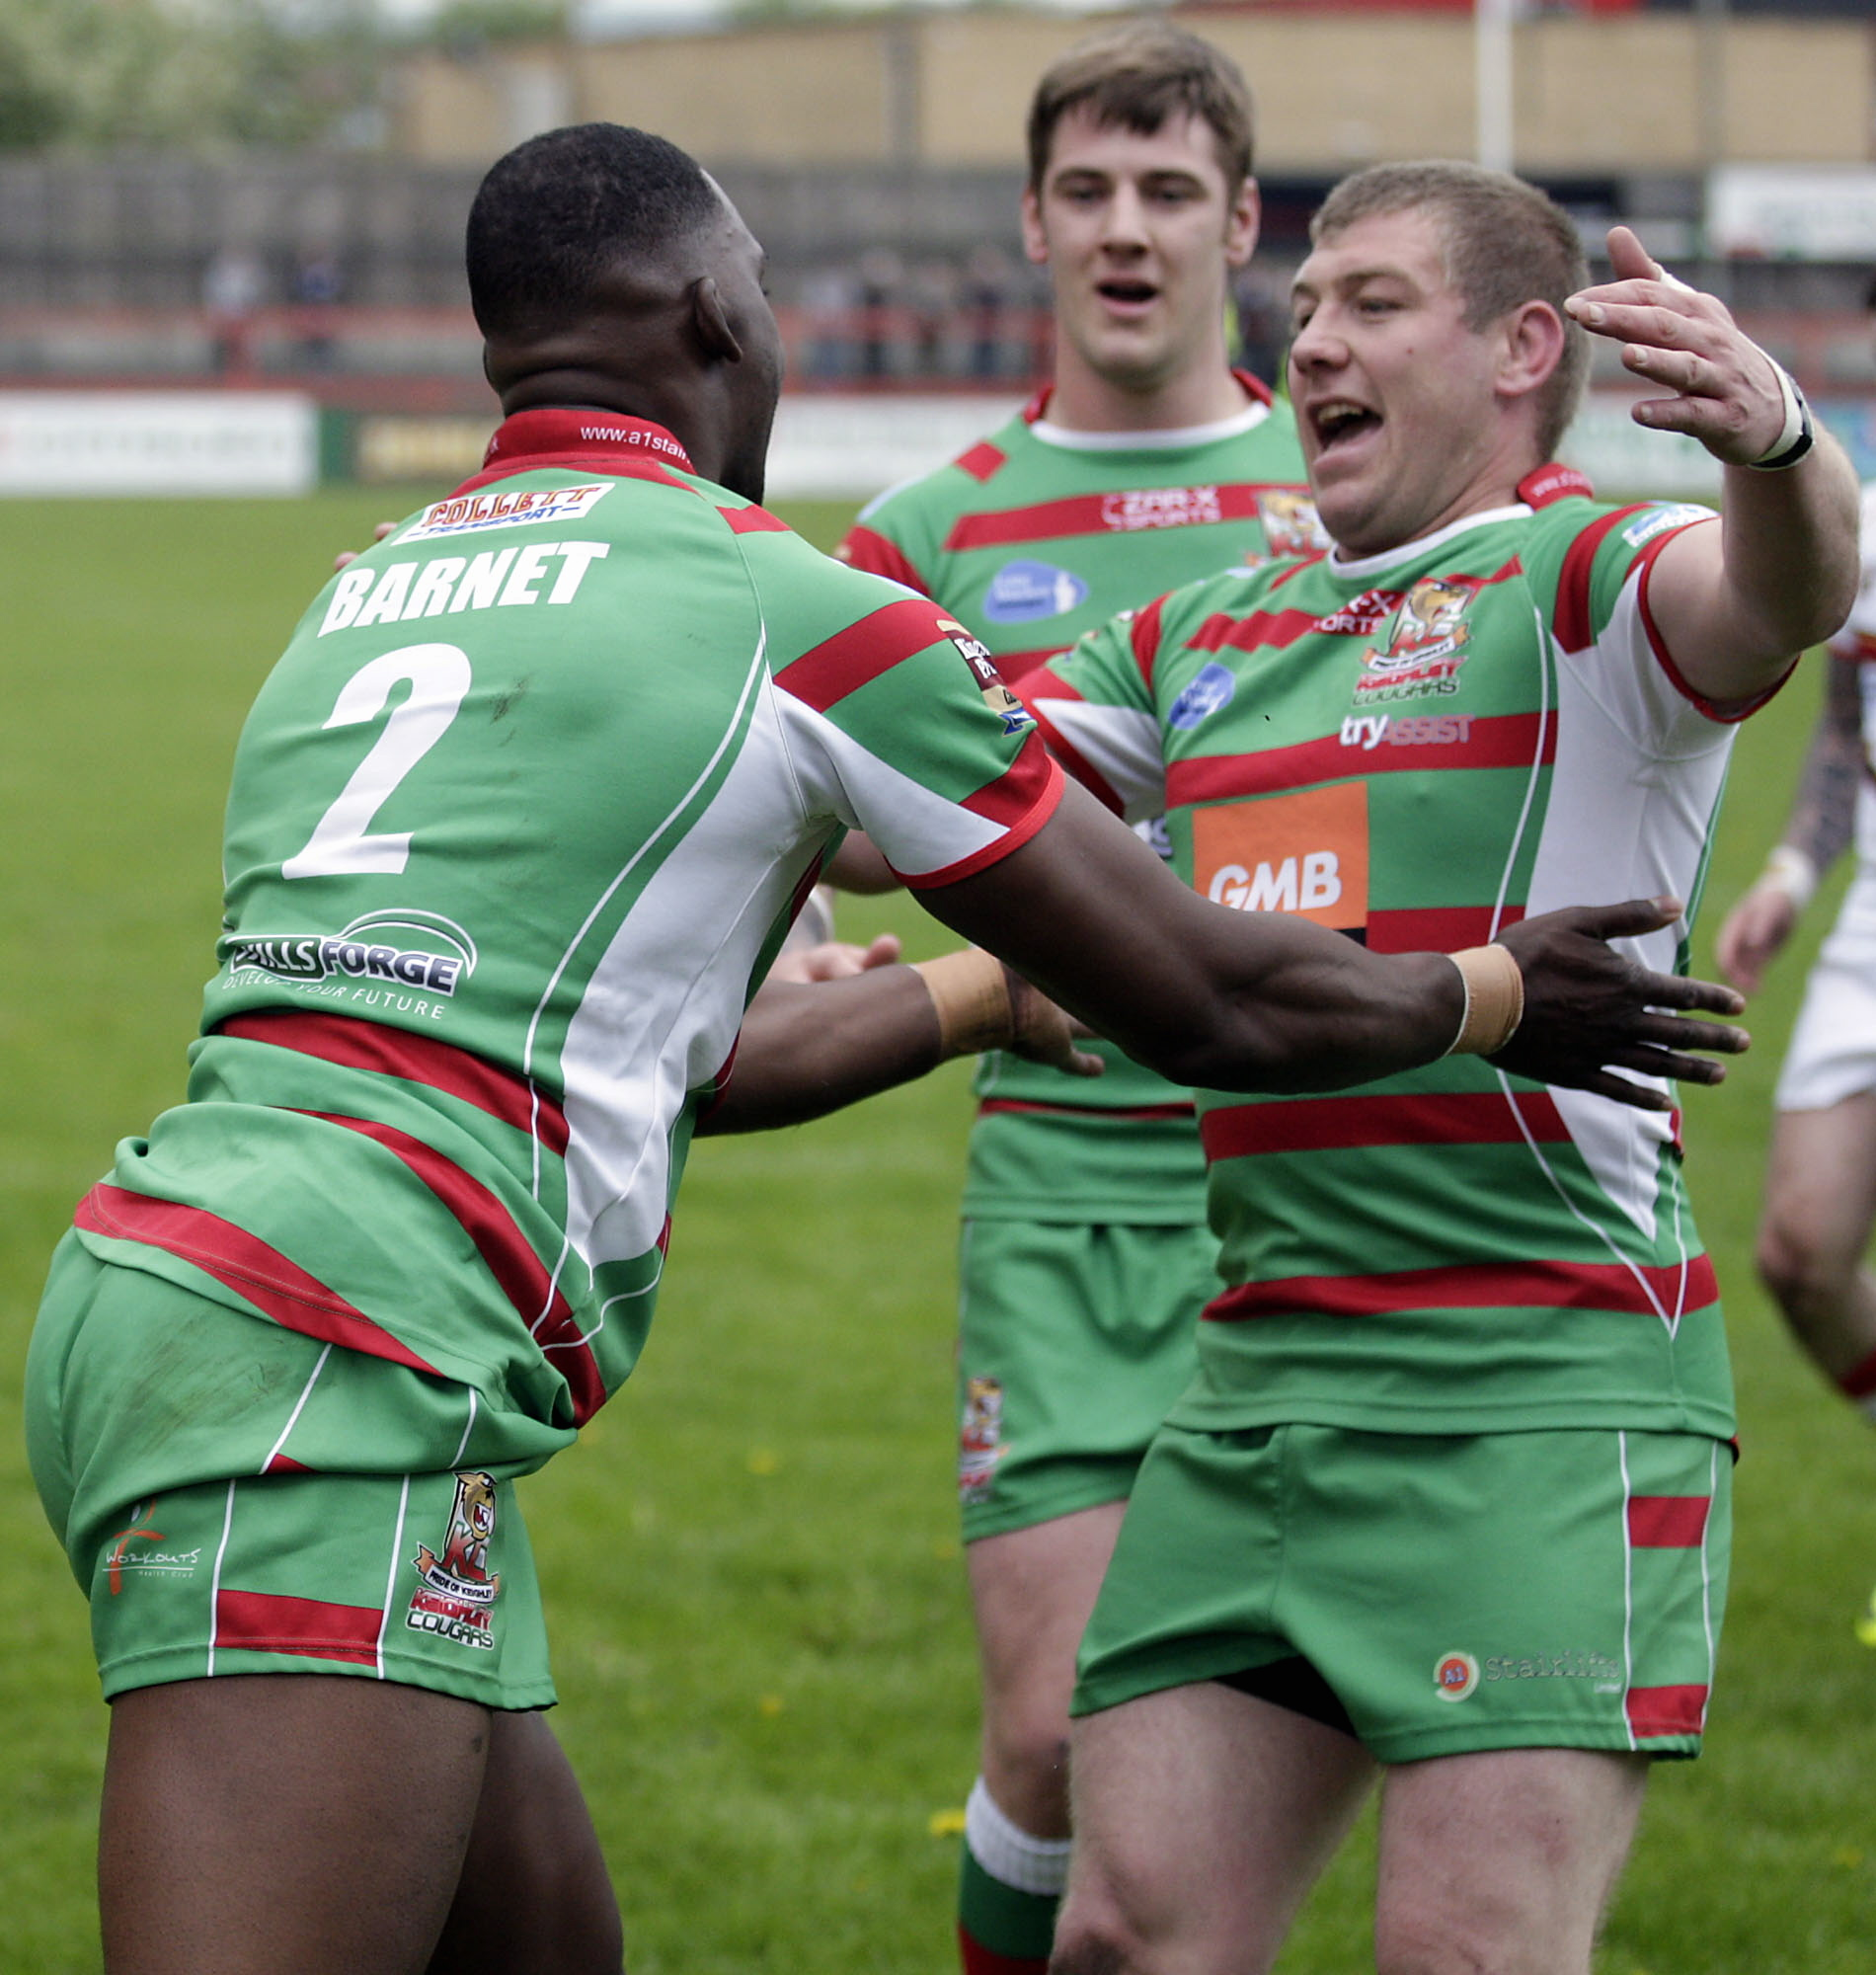 Barnett earns Keighley Cougars Rich pickings